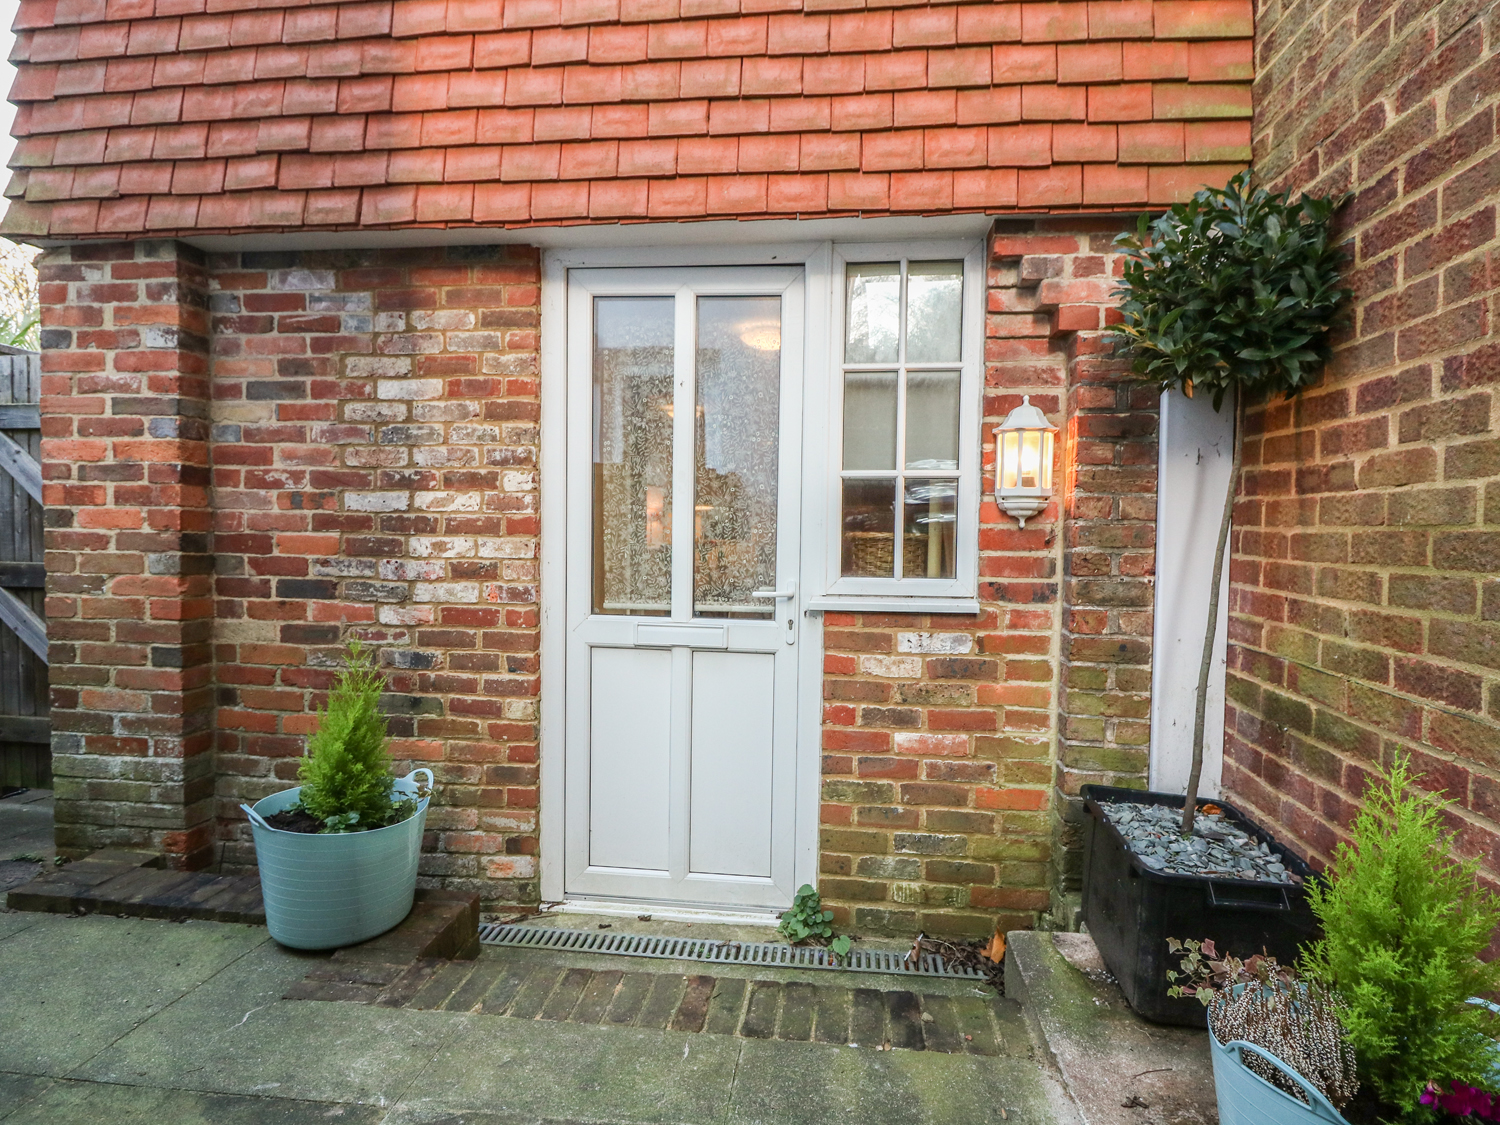 84A Wish Hill, East Sussex